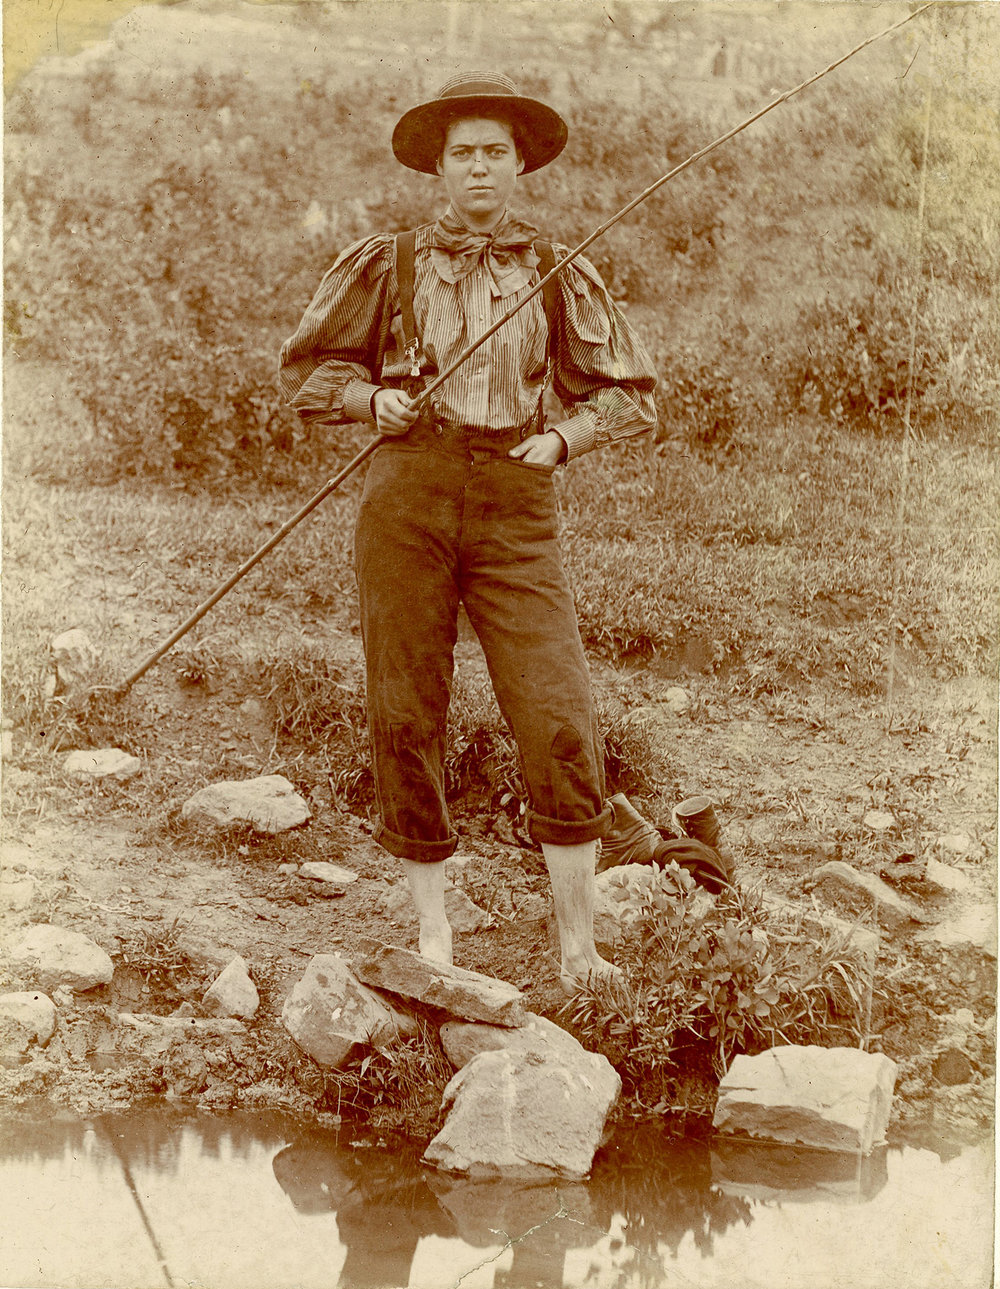 Albumen print of young woman fishing at Yellowstone Park, ca. 1895